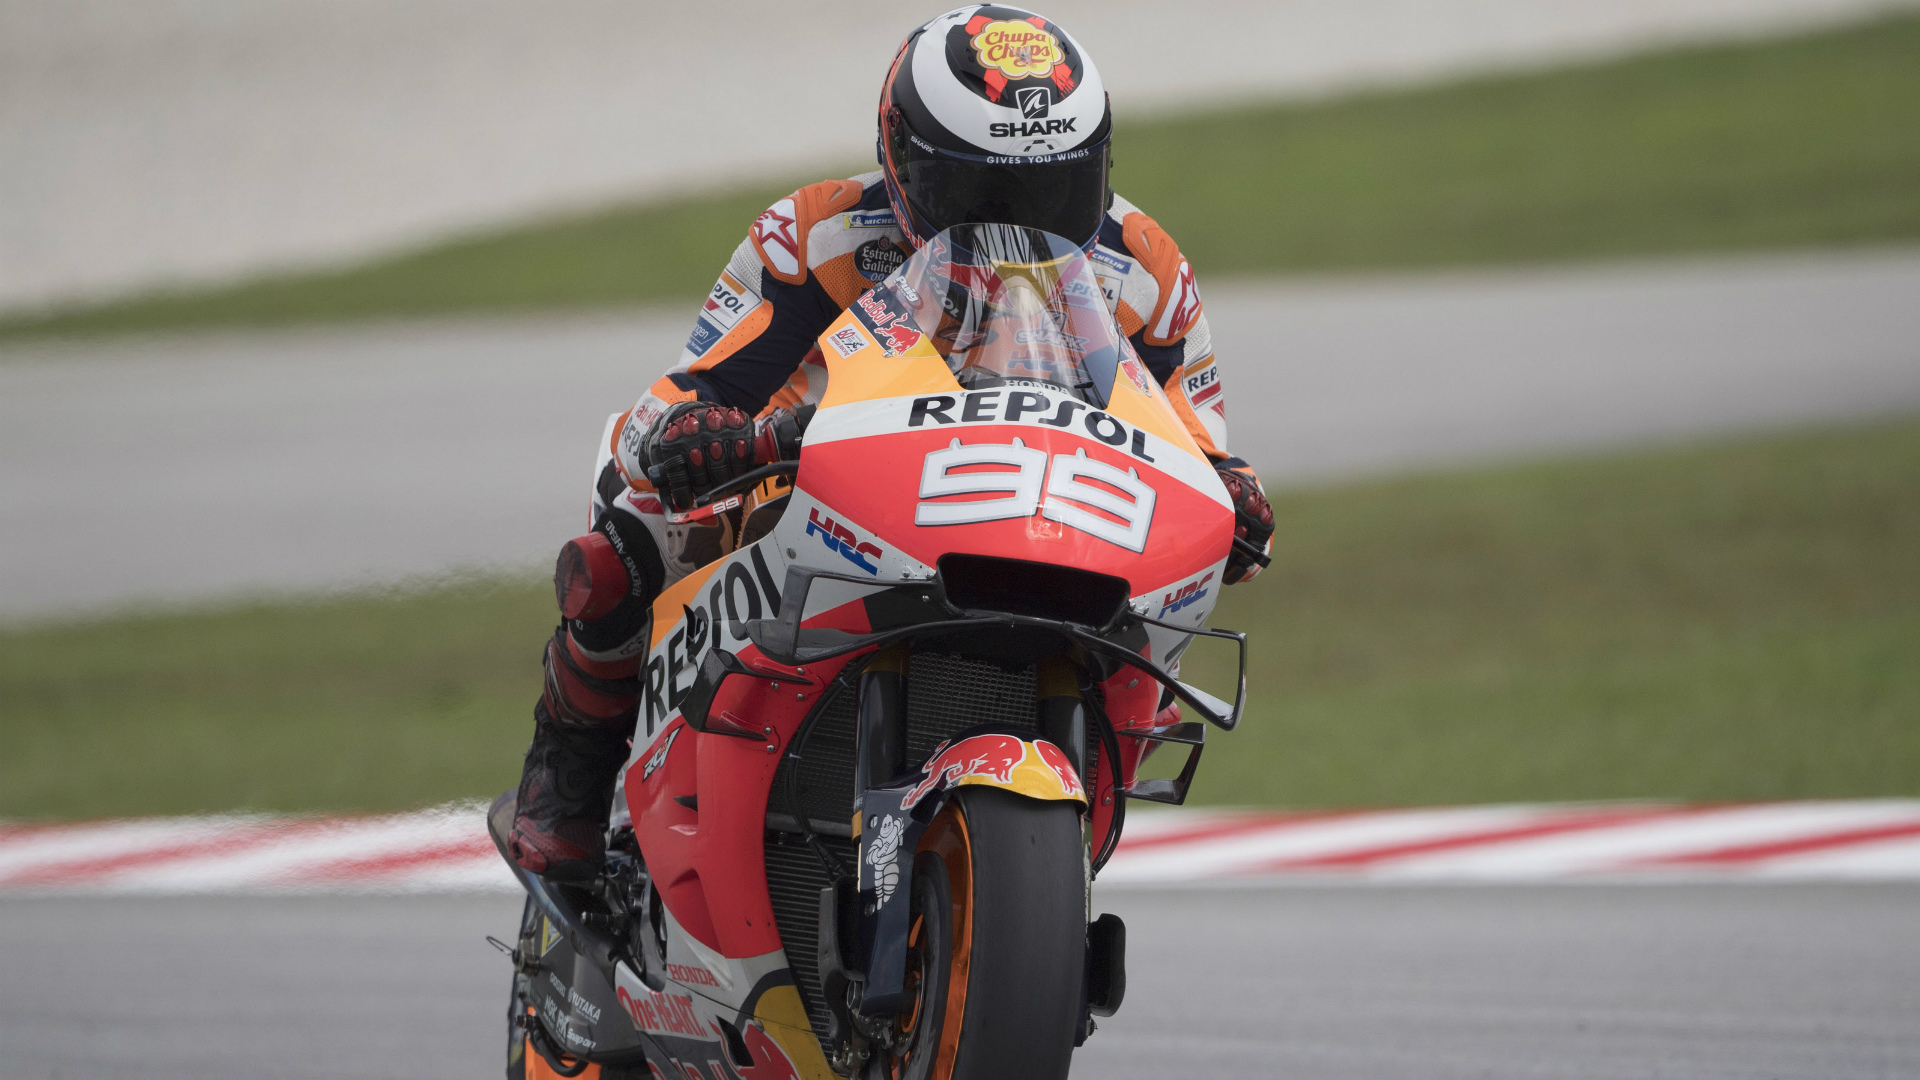 Lorenzo to start last race from 16th after Quartararo pips Marquez to pole